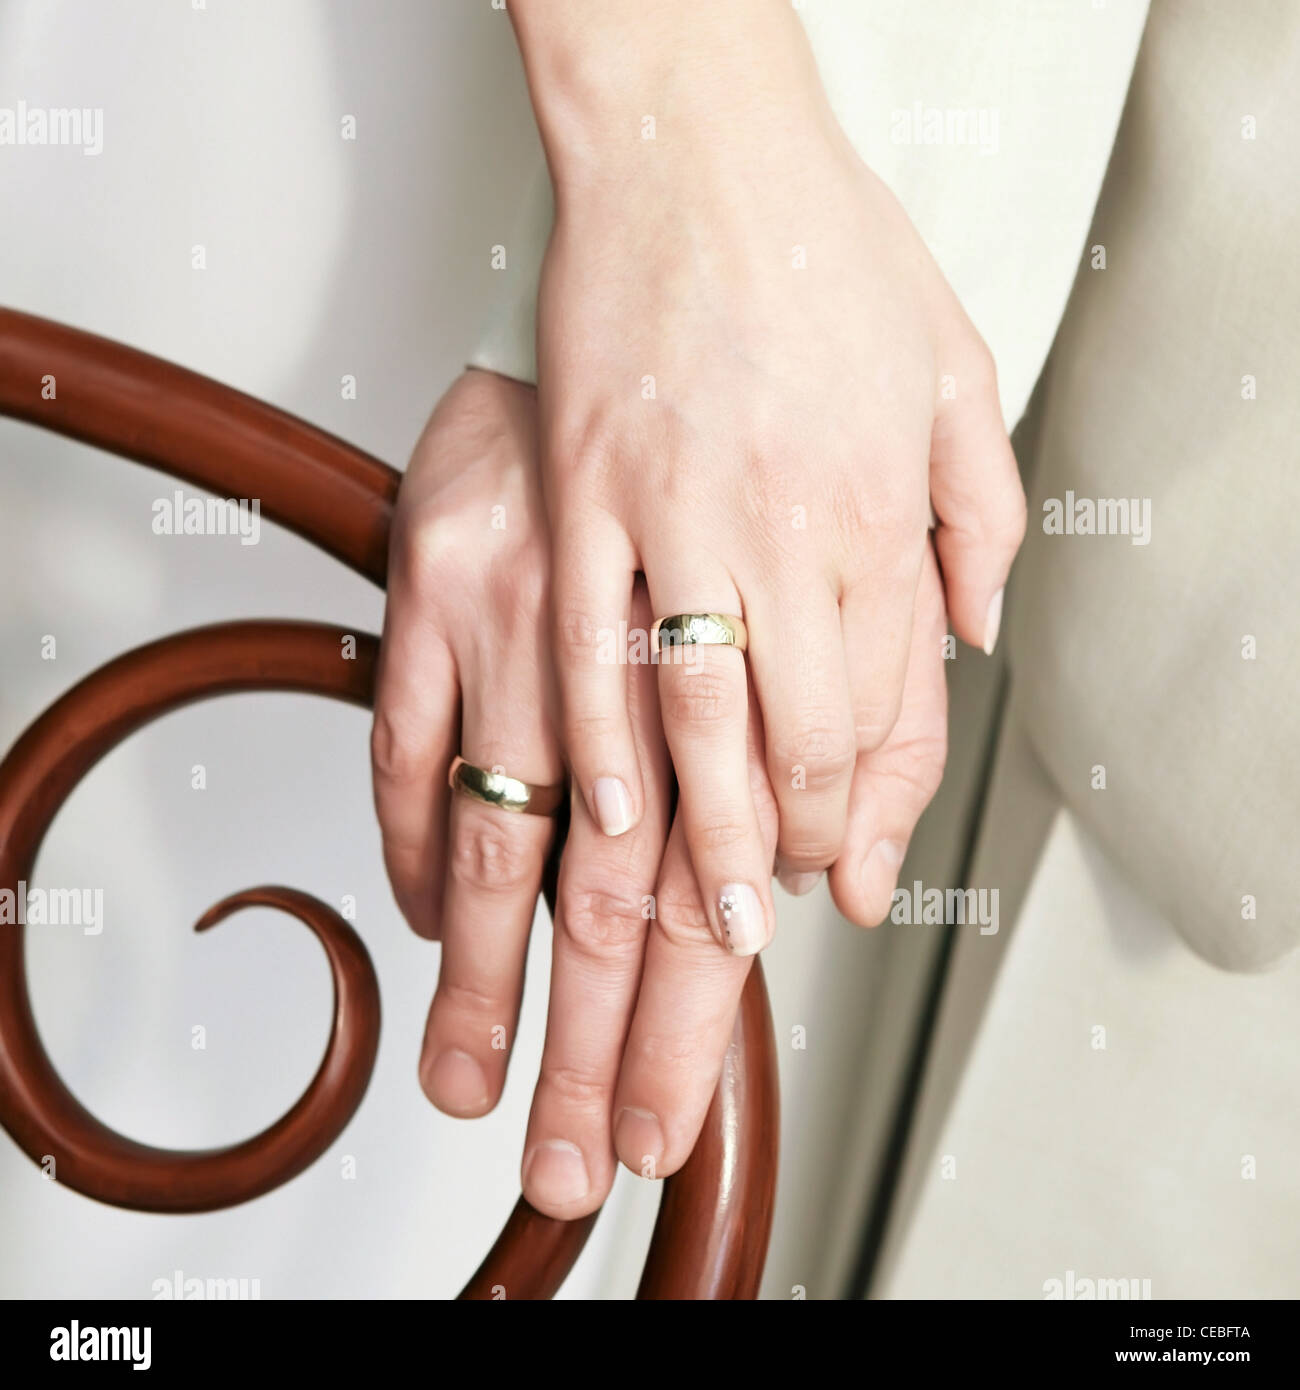 Just Married Couple Showing Up Wedding Rings Stock Photo 43279834